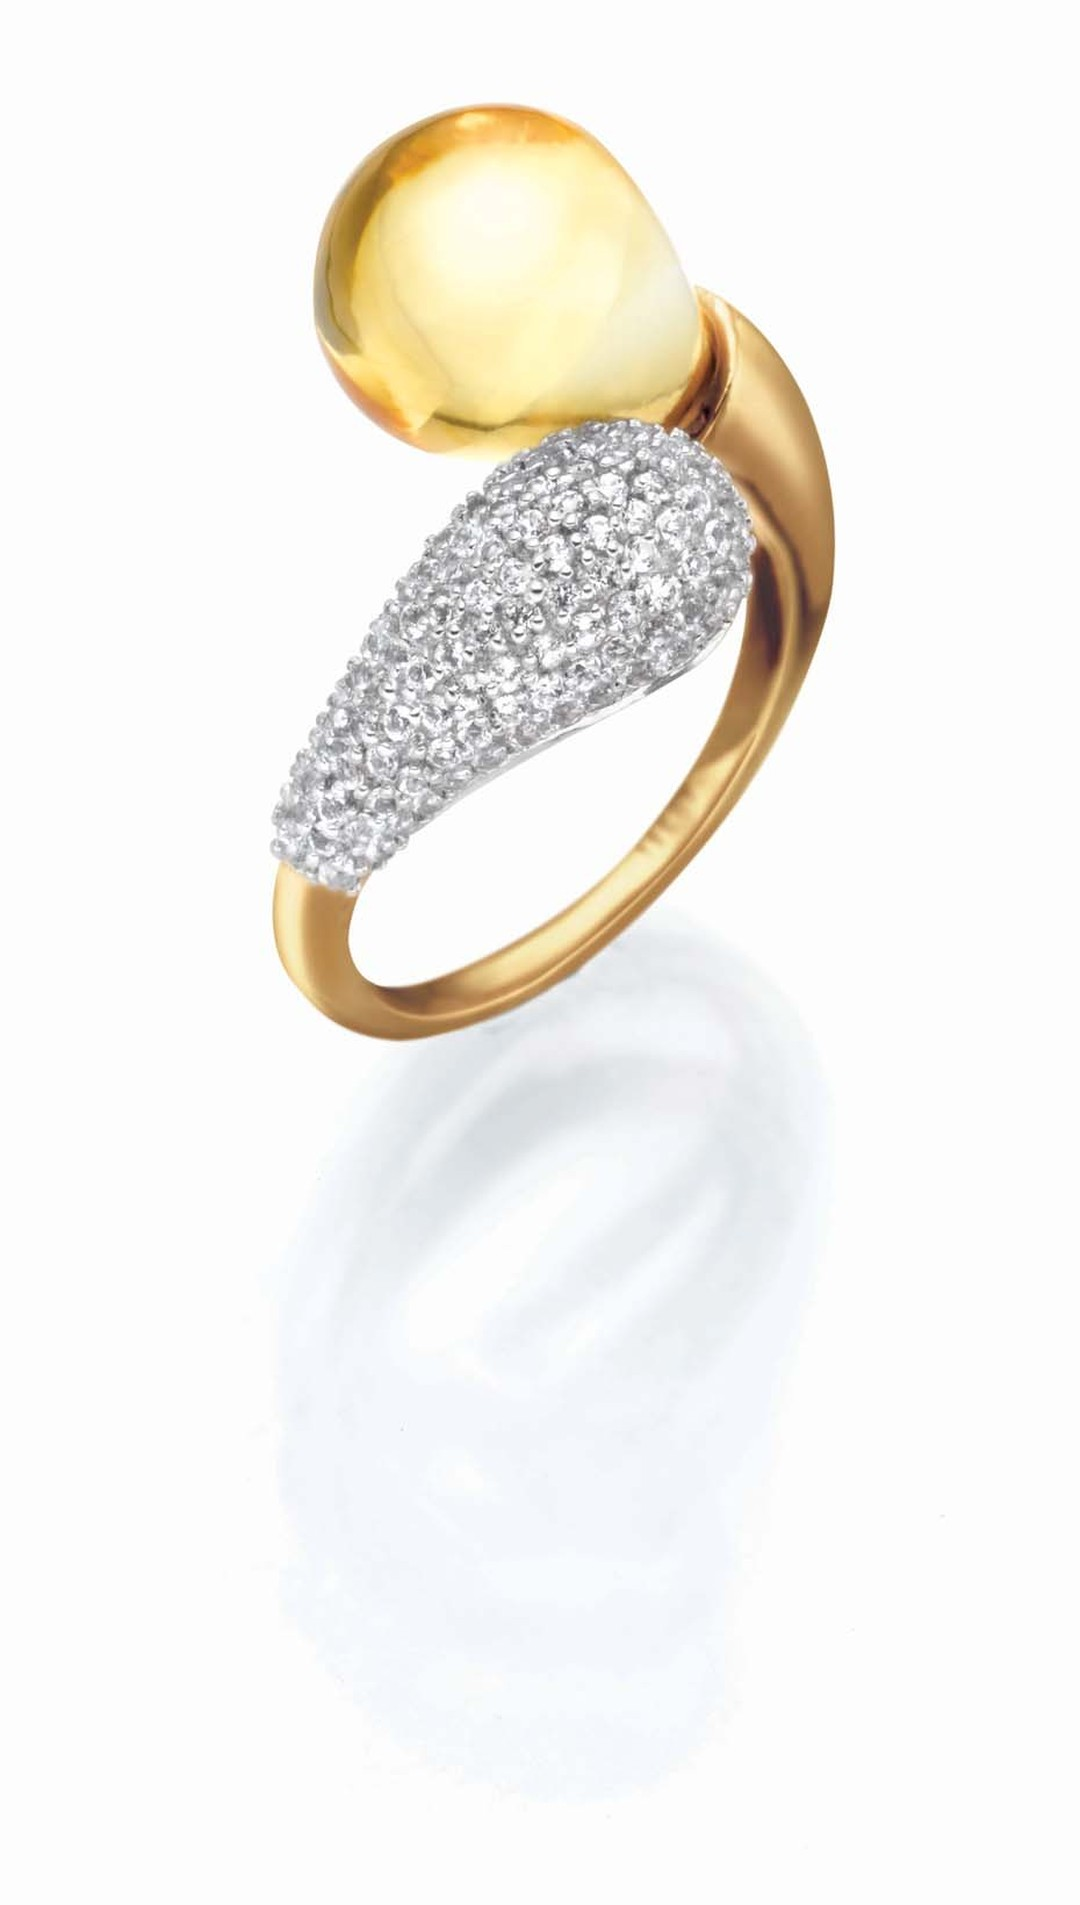 Tanishq IVA 2 collection gold ring with pavé diamonds and a citrine curling around the finger.